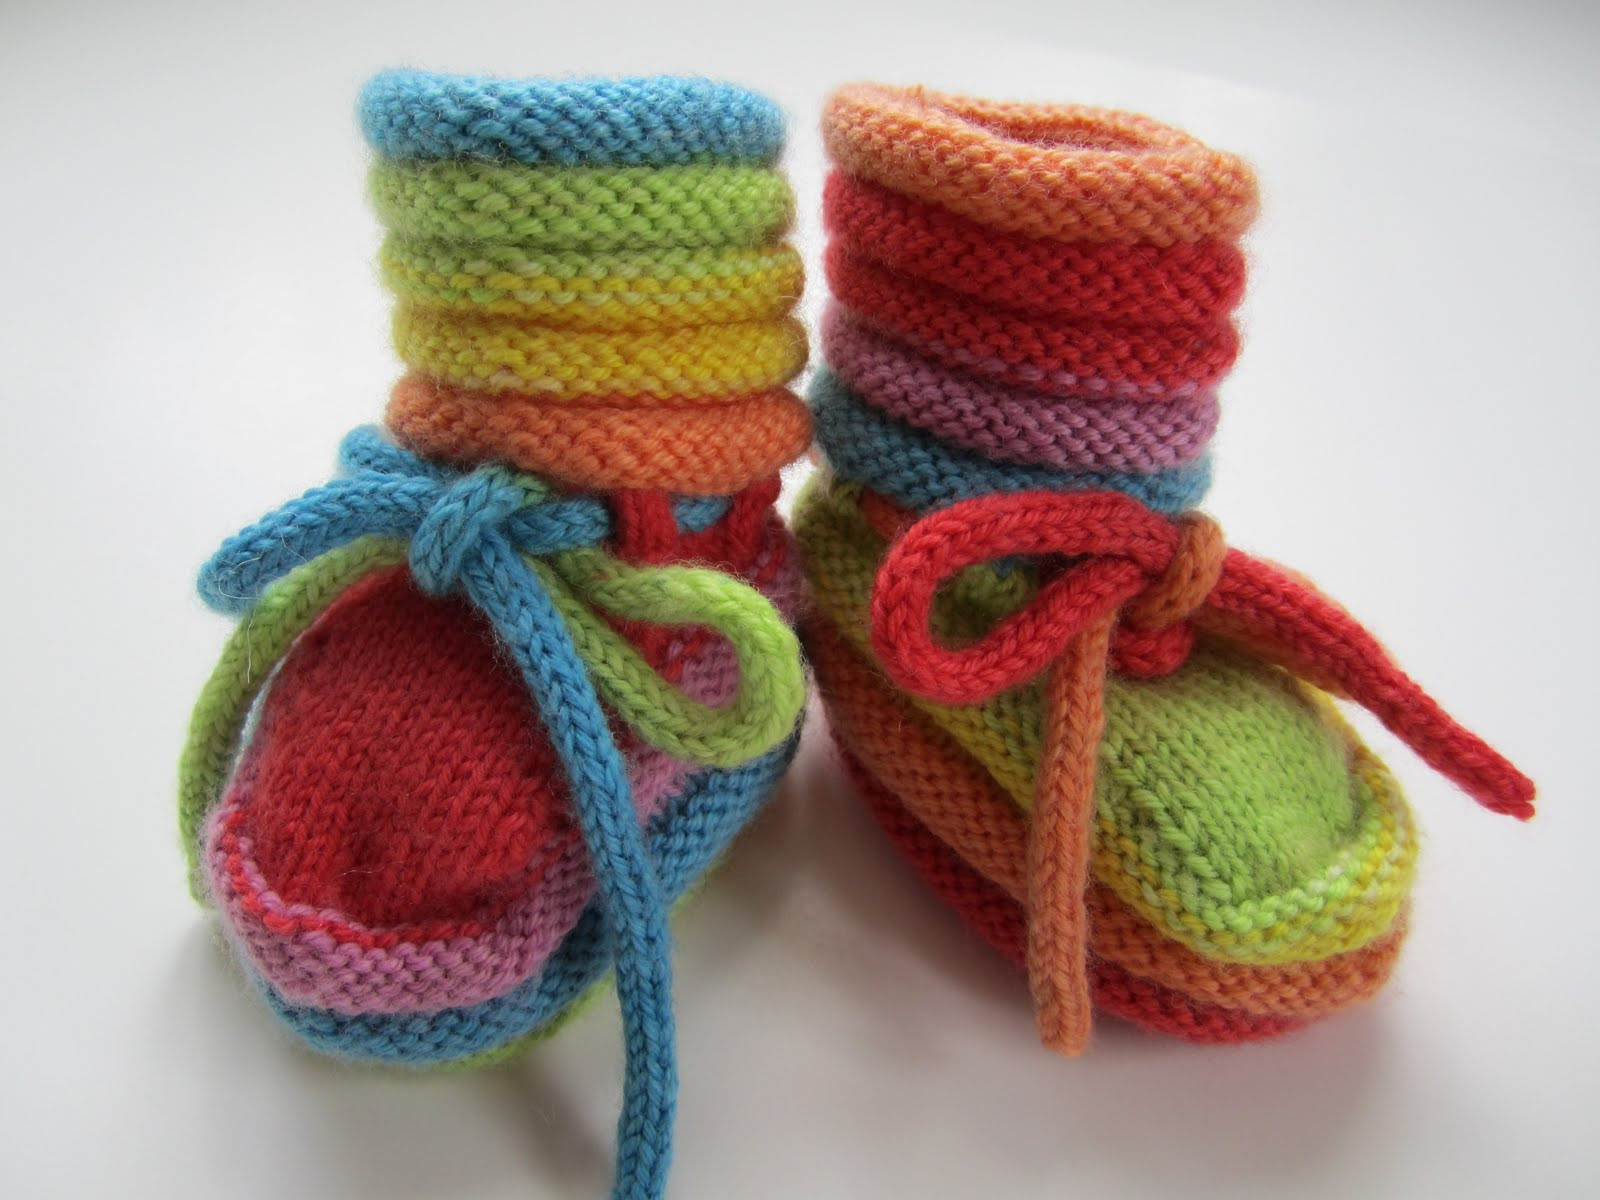 New Down Cloverlaine An Earthquake Baby Booties Knitting Pattern Of Awesome 47 Pics Baby Booties Knitting Pattern